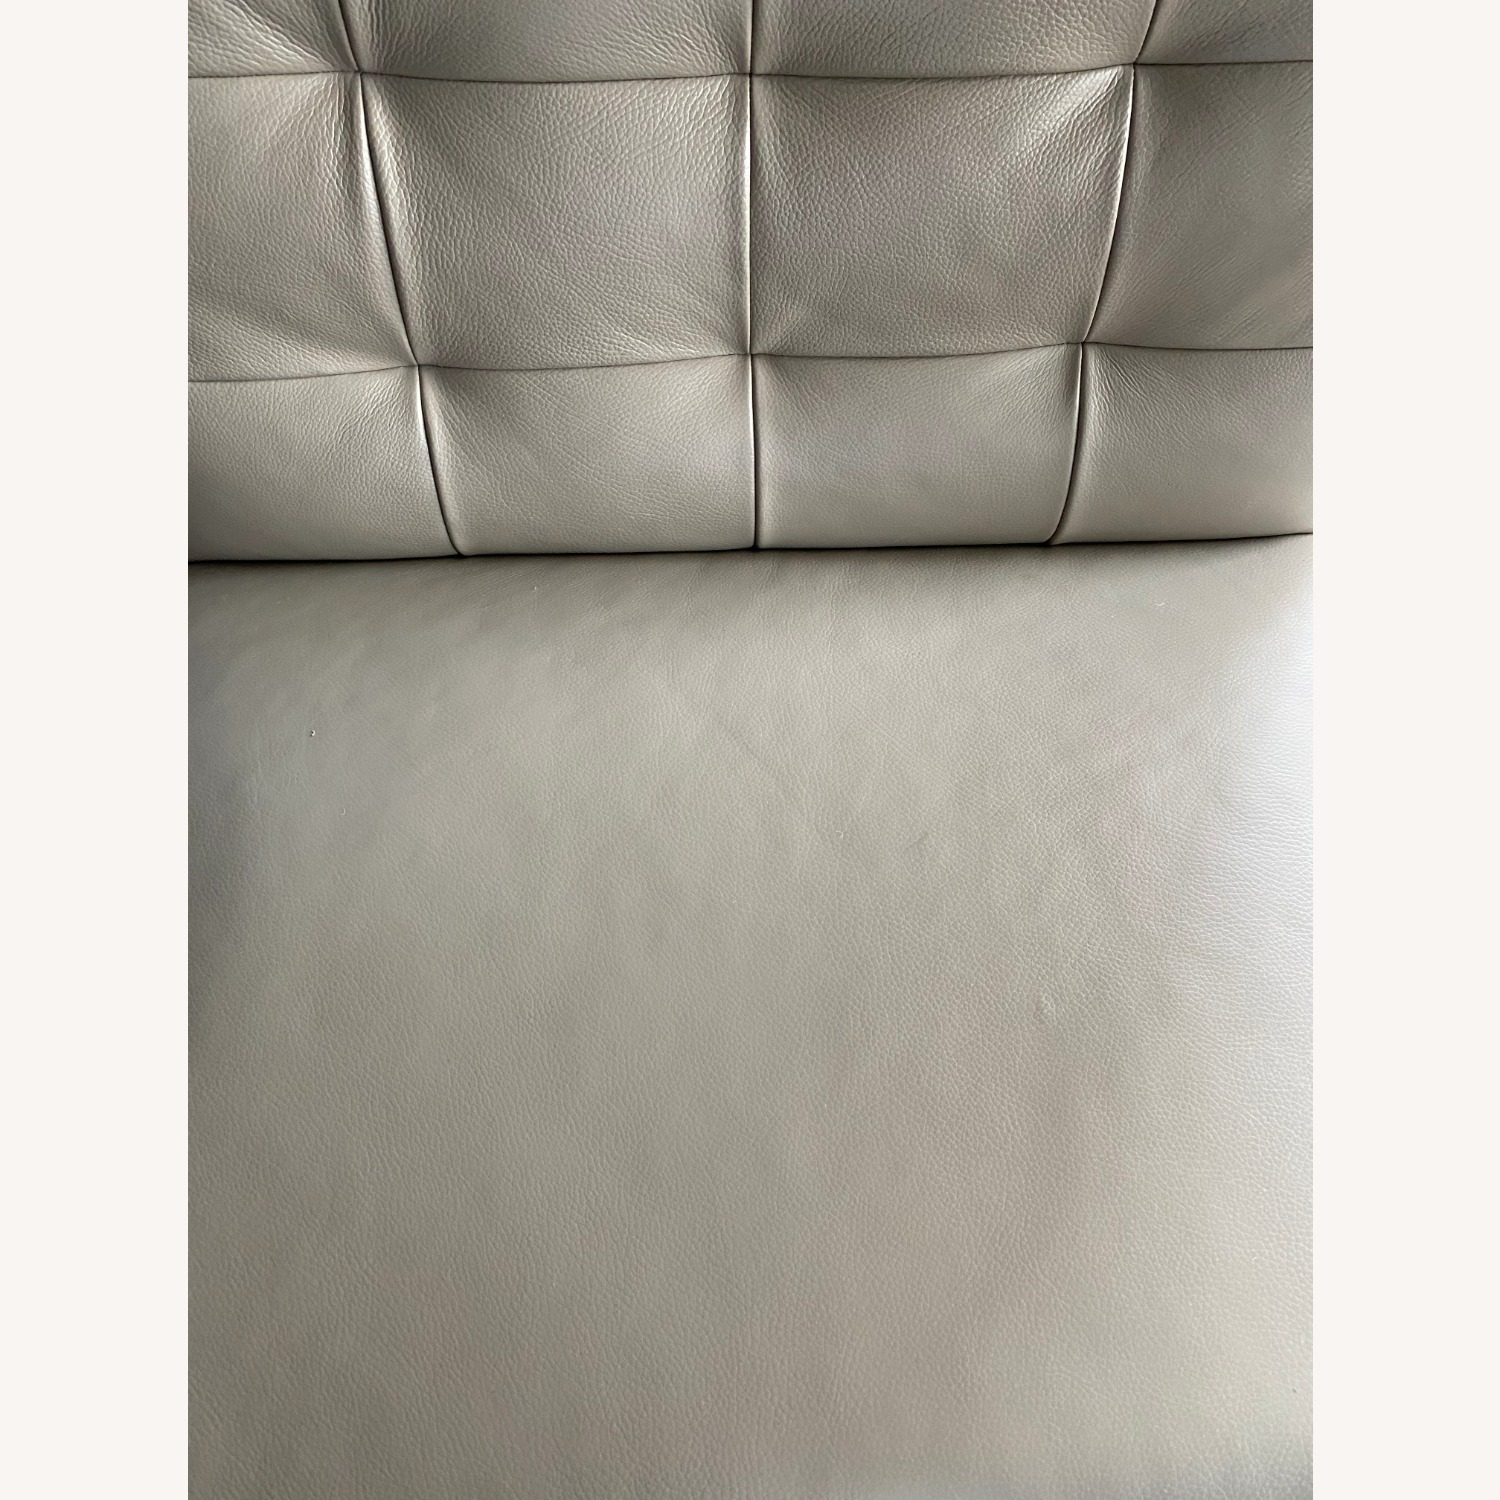 Macy's Leather Chair - image-3